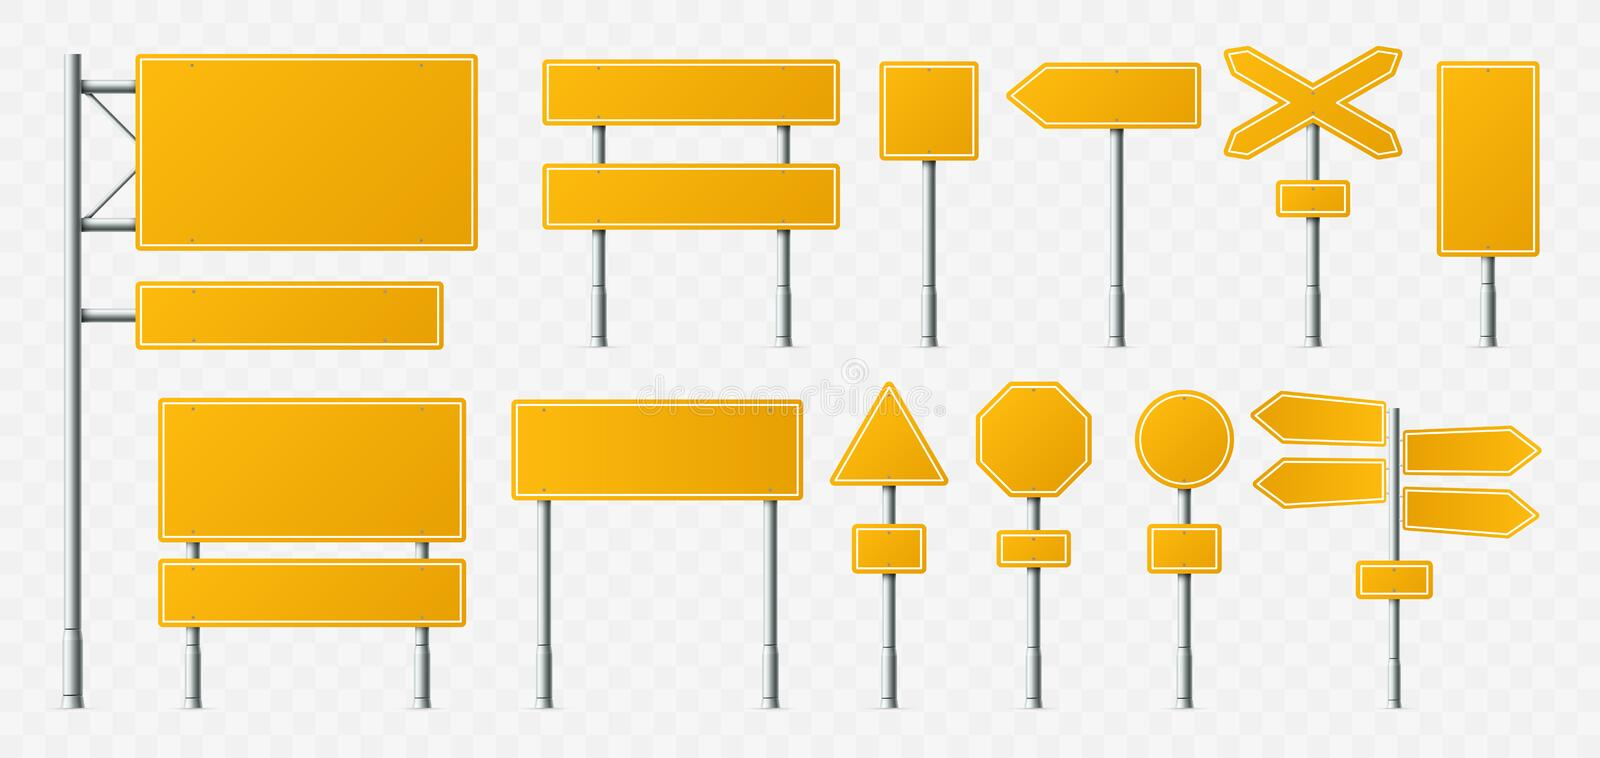 Yellow road sign. Empty street signs, transport road boards and signboard on metal stand realistic vector illustration vector illustration